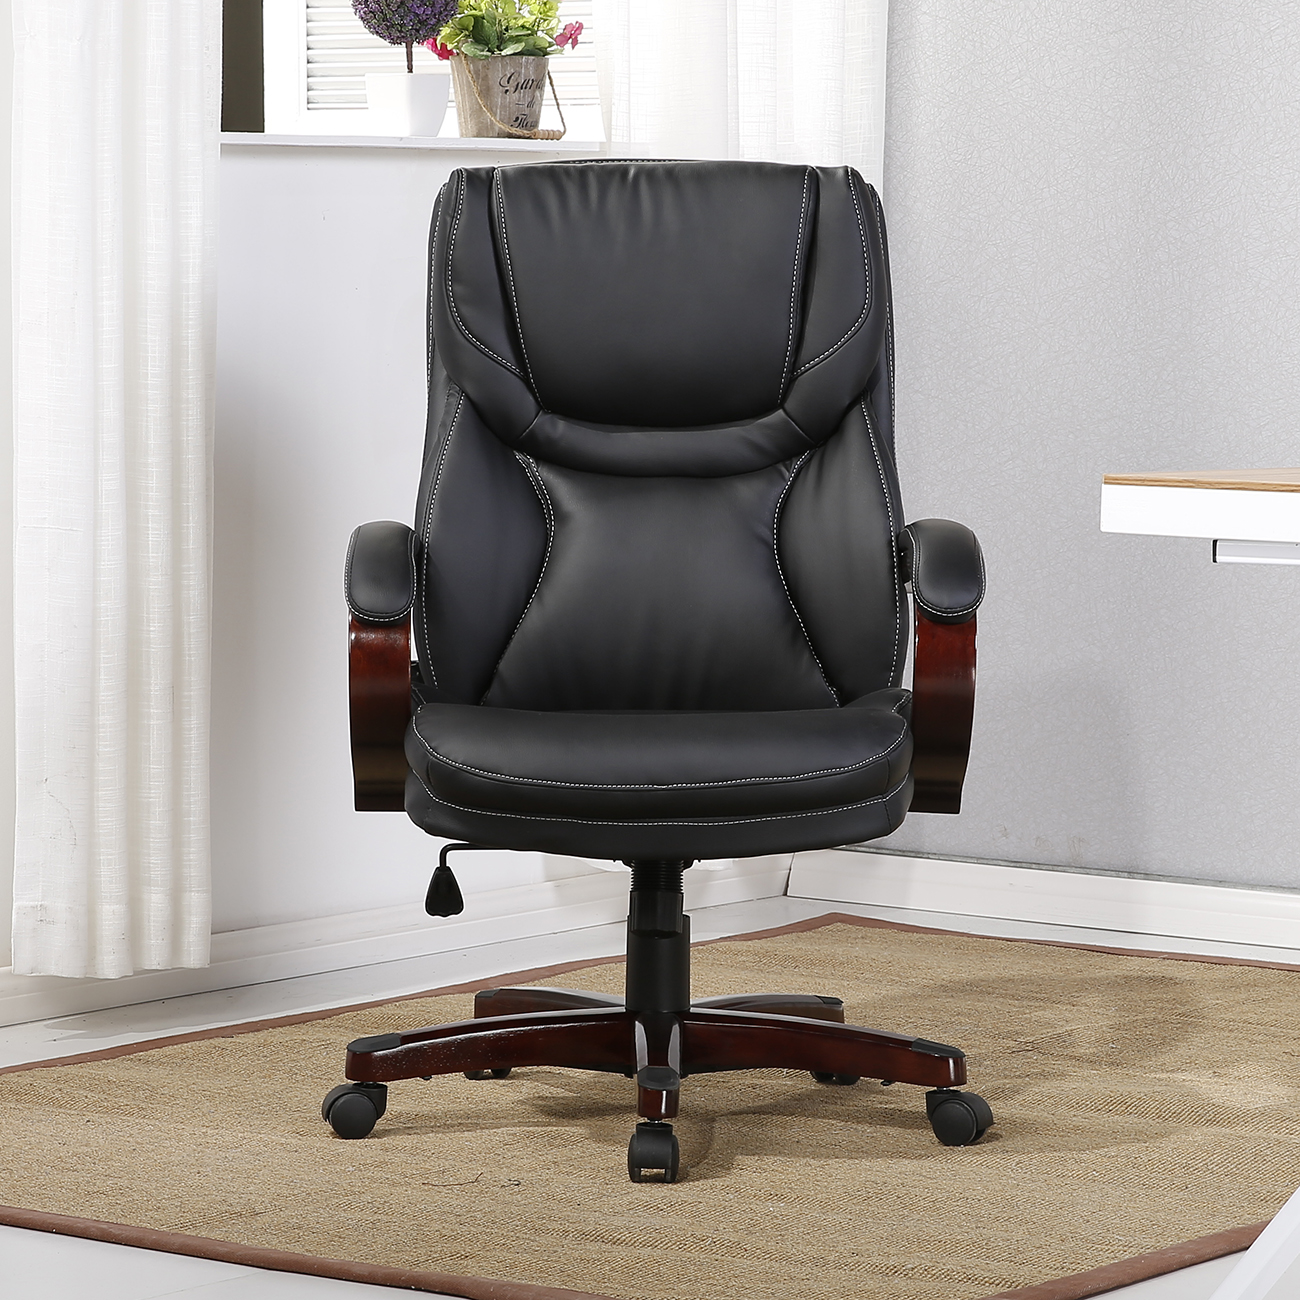 Back Support Office Chair Executive Chair High Back Office Desk Arm Lumbar Support